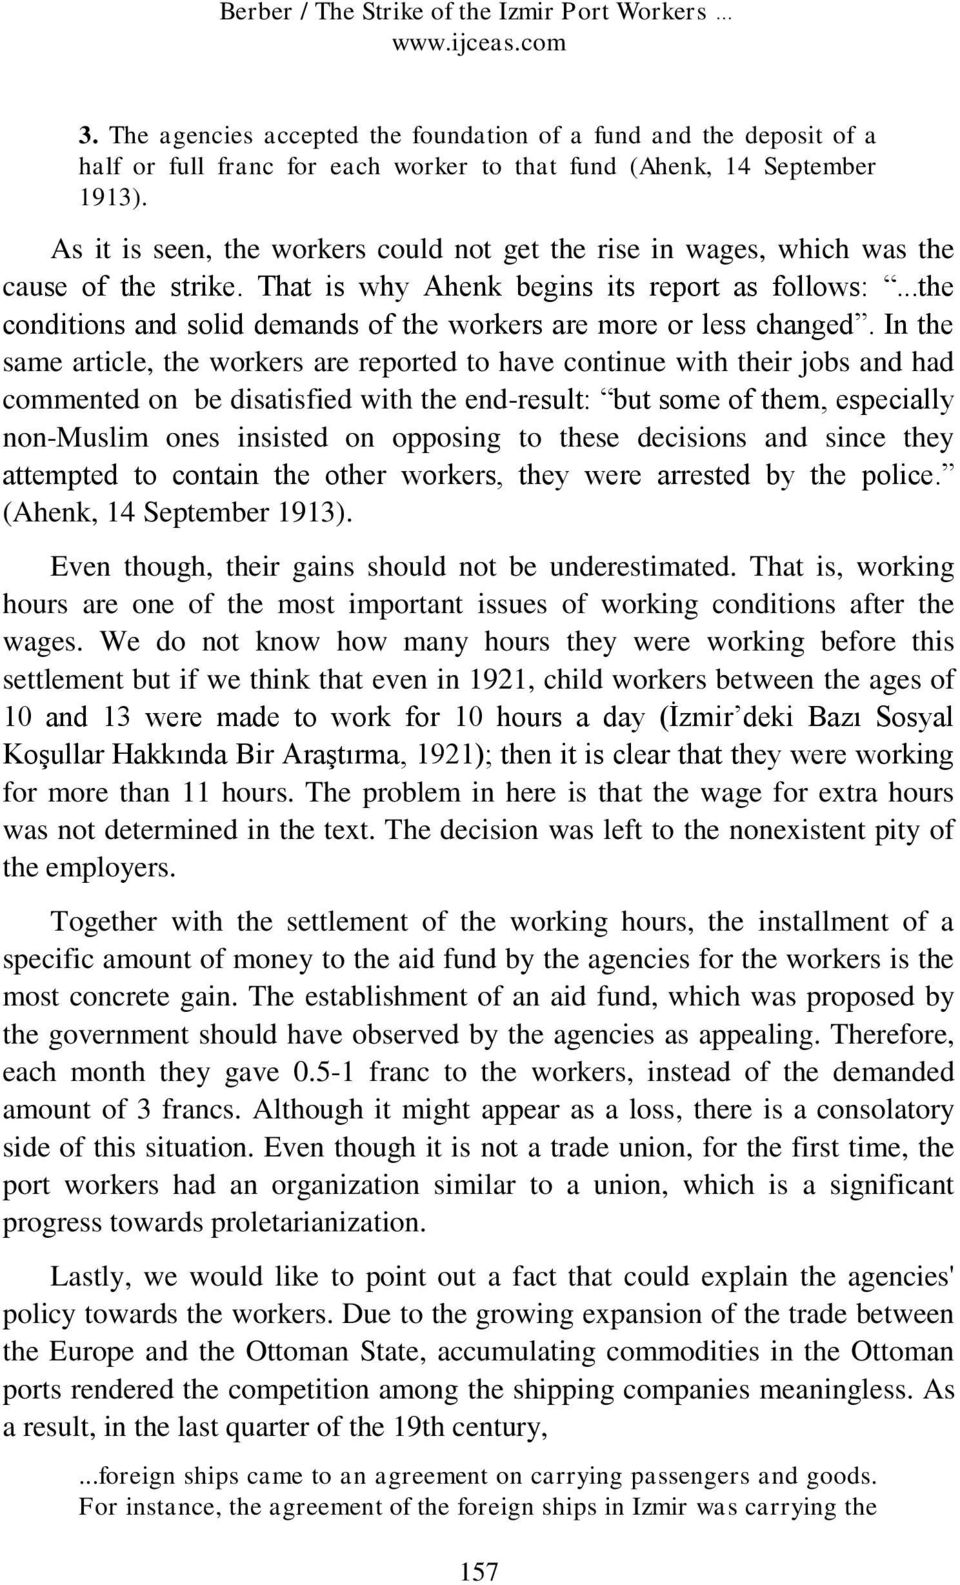 As it is seen, the workers could not get the rise in wages, which was the cause of the strike. That is why Ahenk begins its report as follows:.